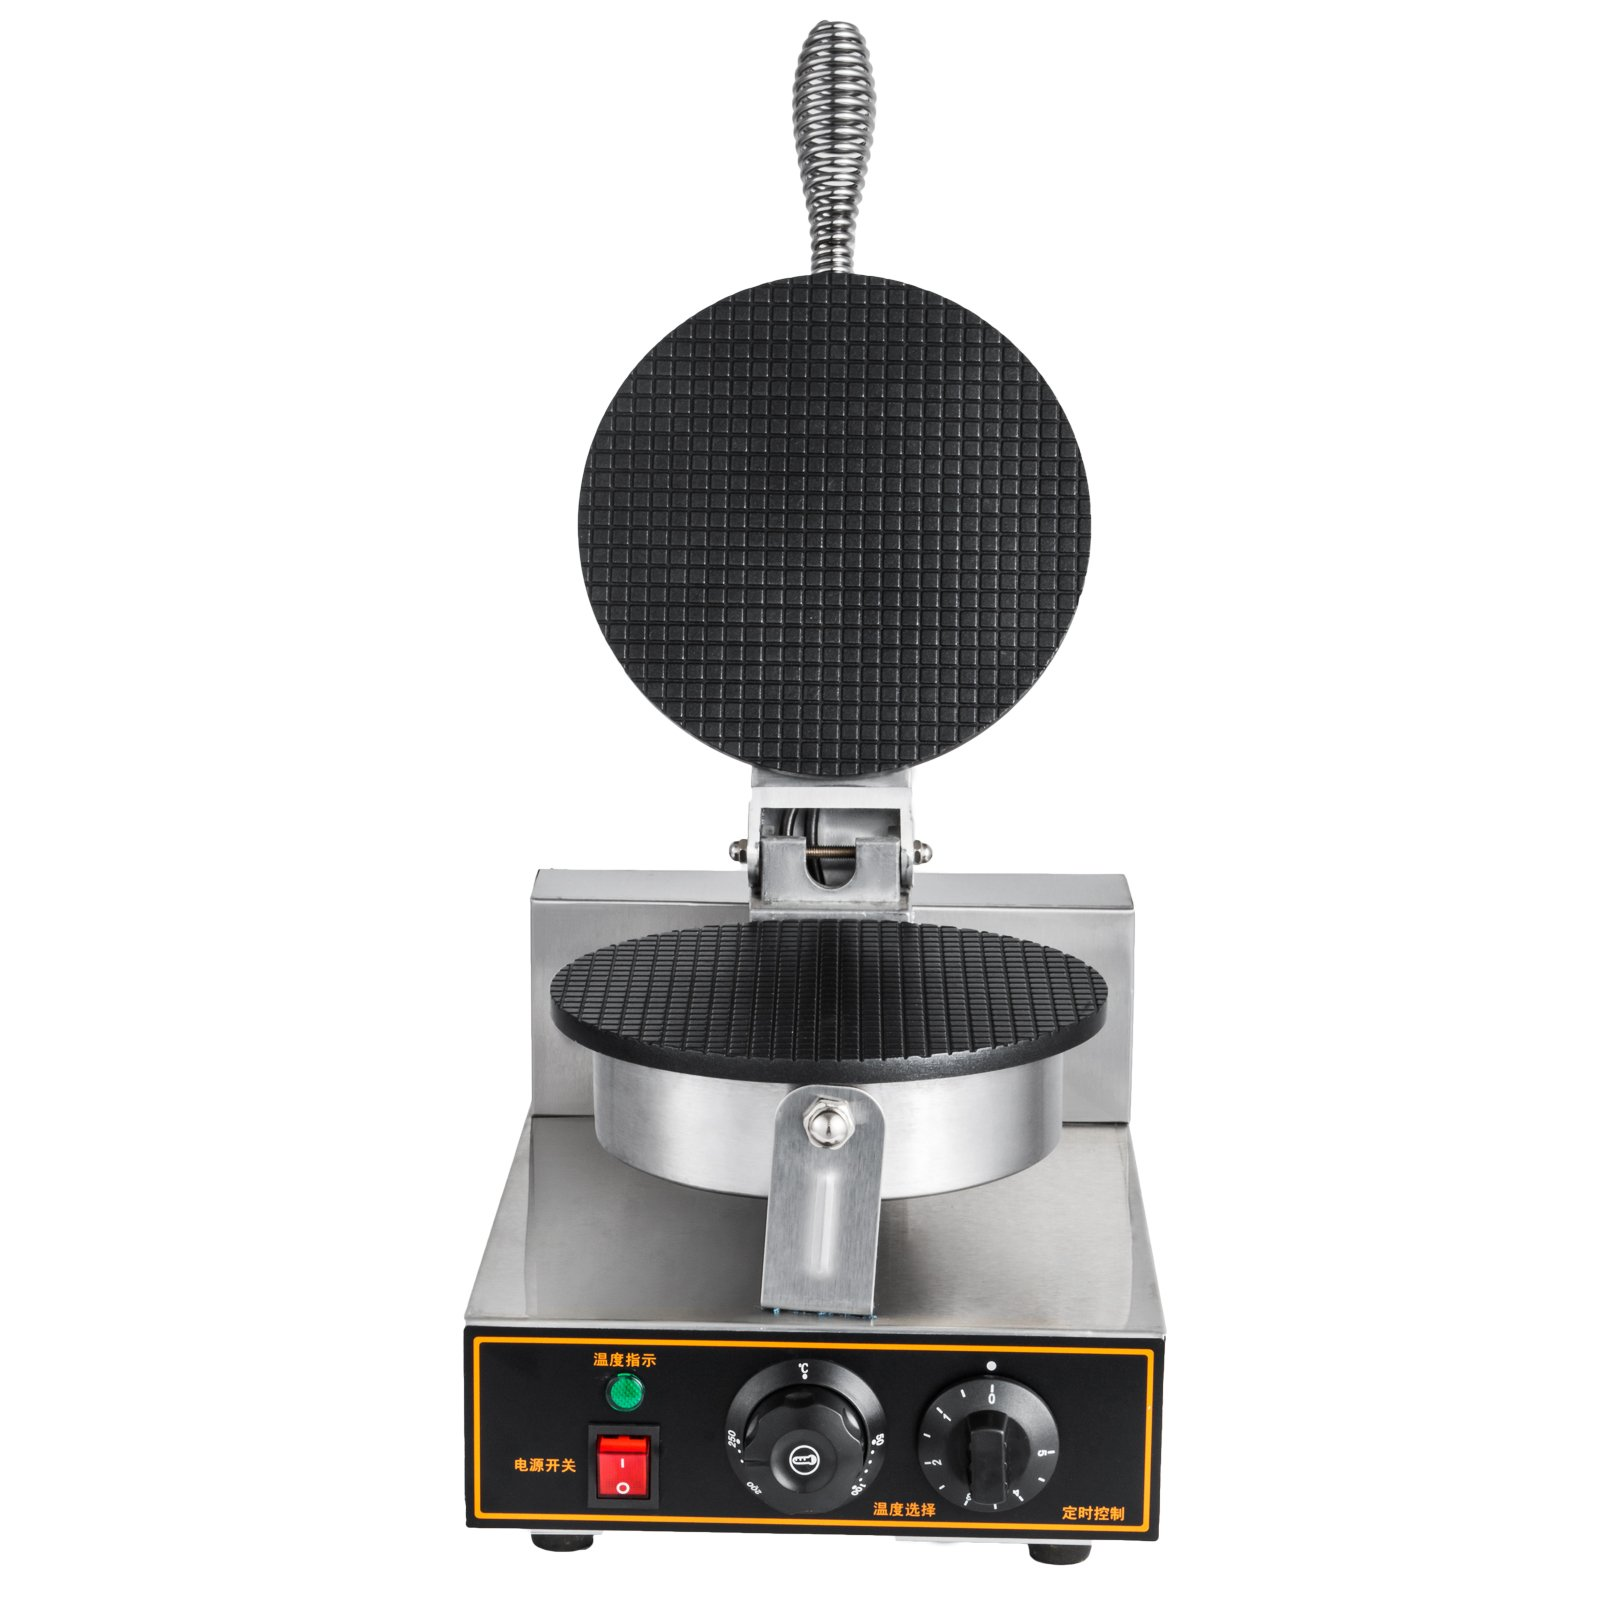 Jinon 110V Waffle Bake Machine, Electric Egg Cake Oven Puff Bread Maker Stainless Steel Anti-Scalding Effect Practical Not Perishable